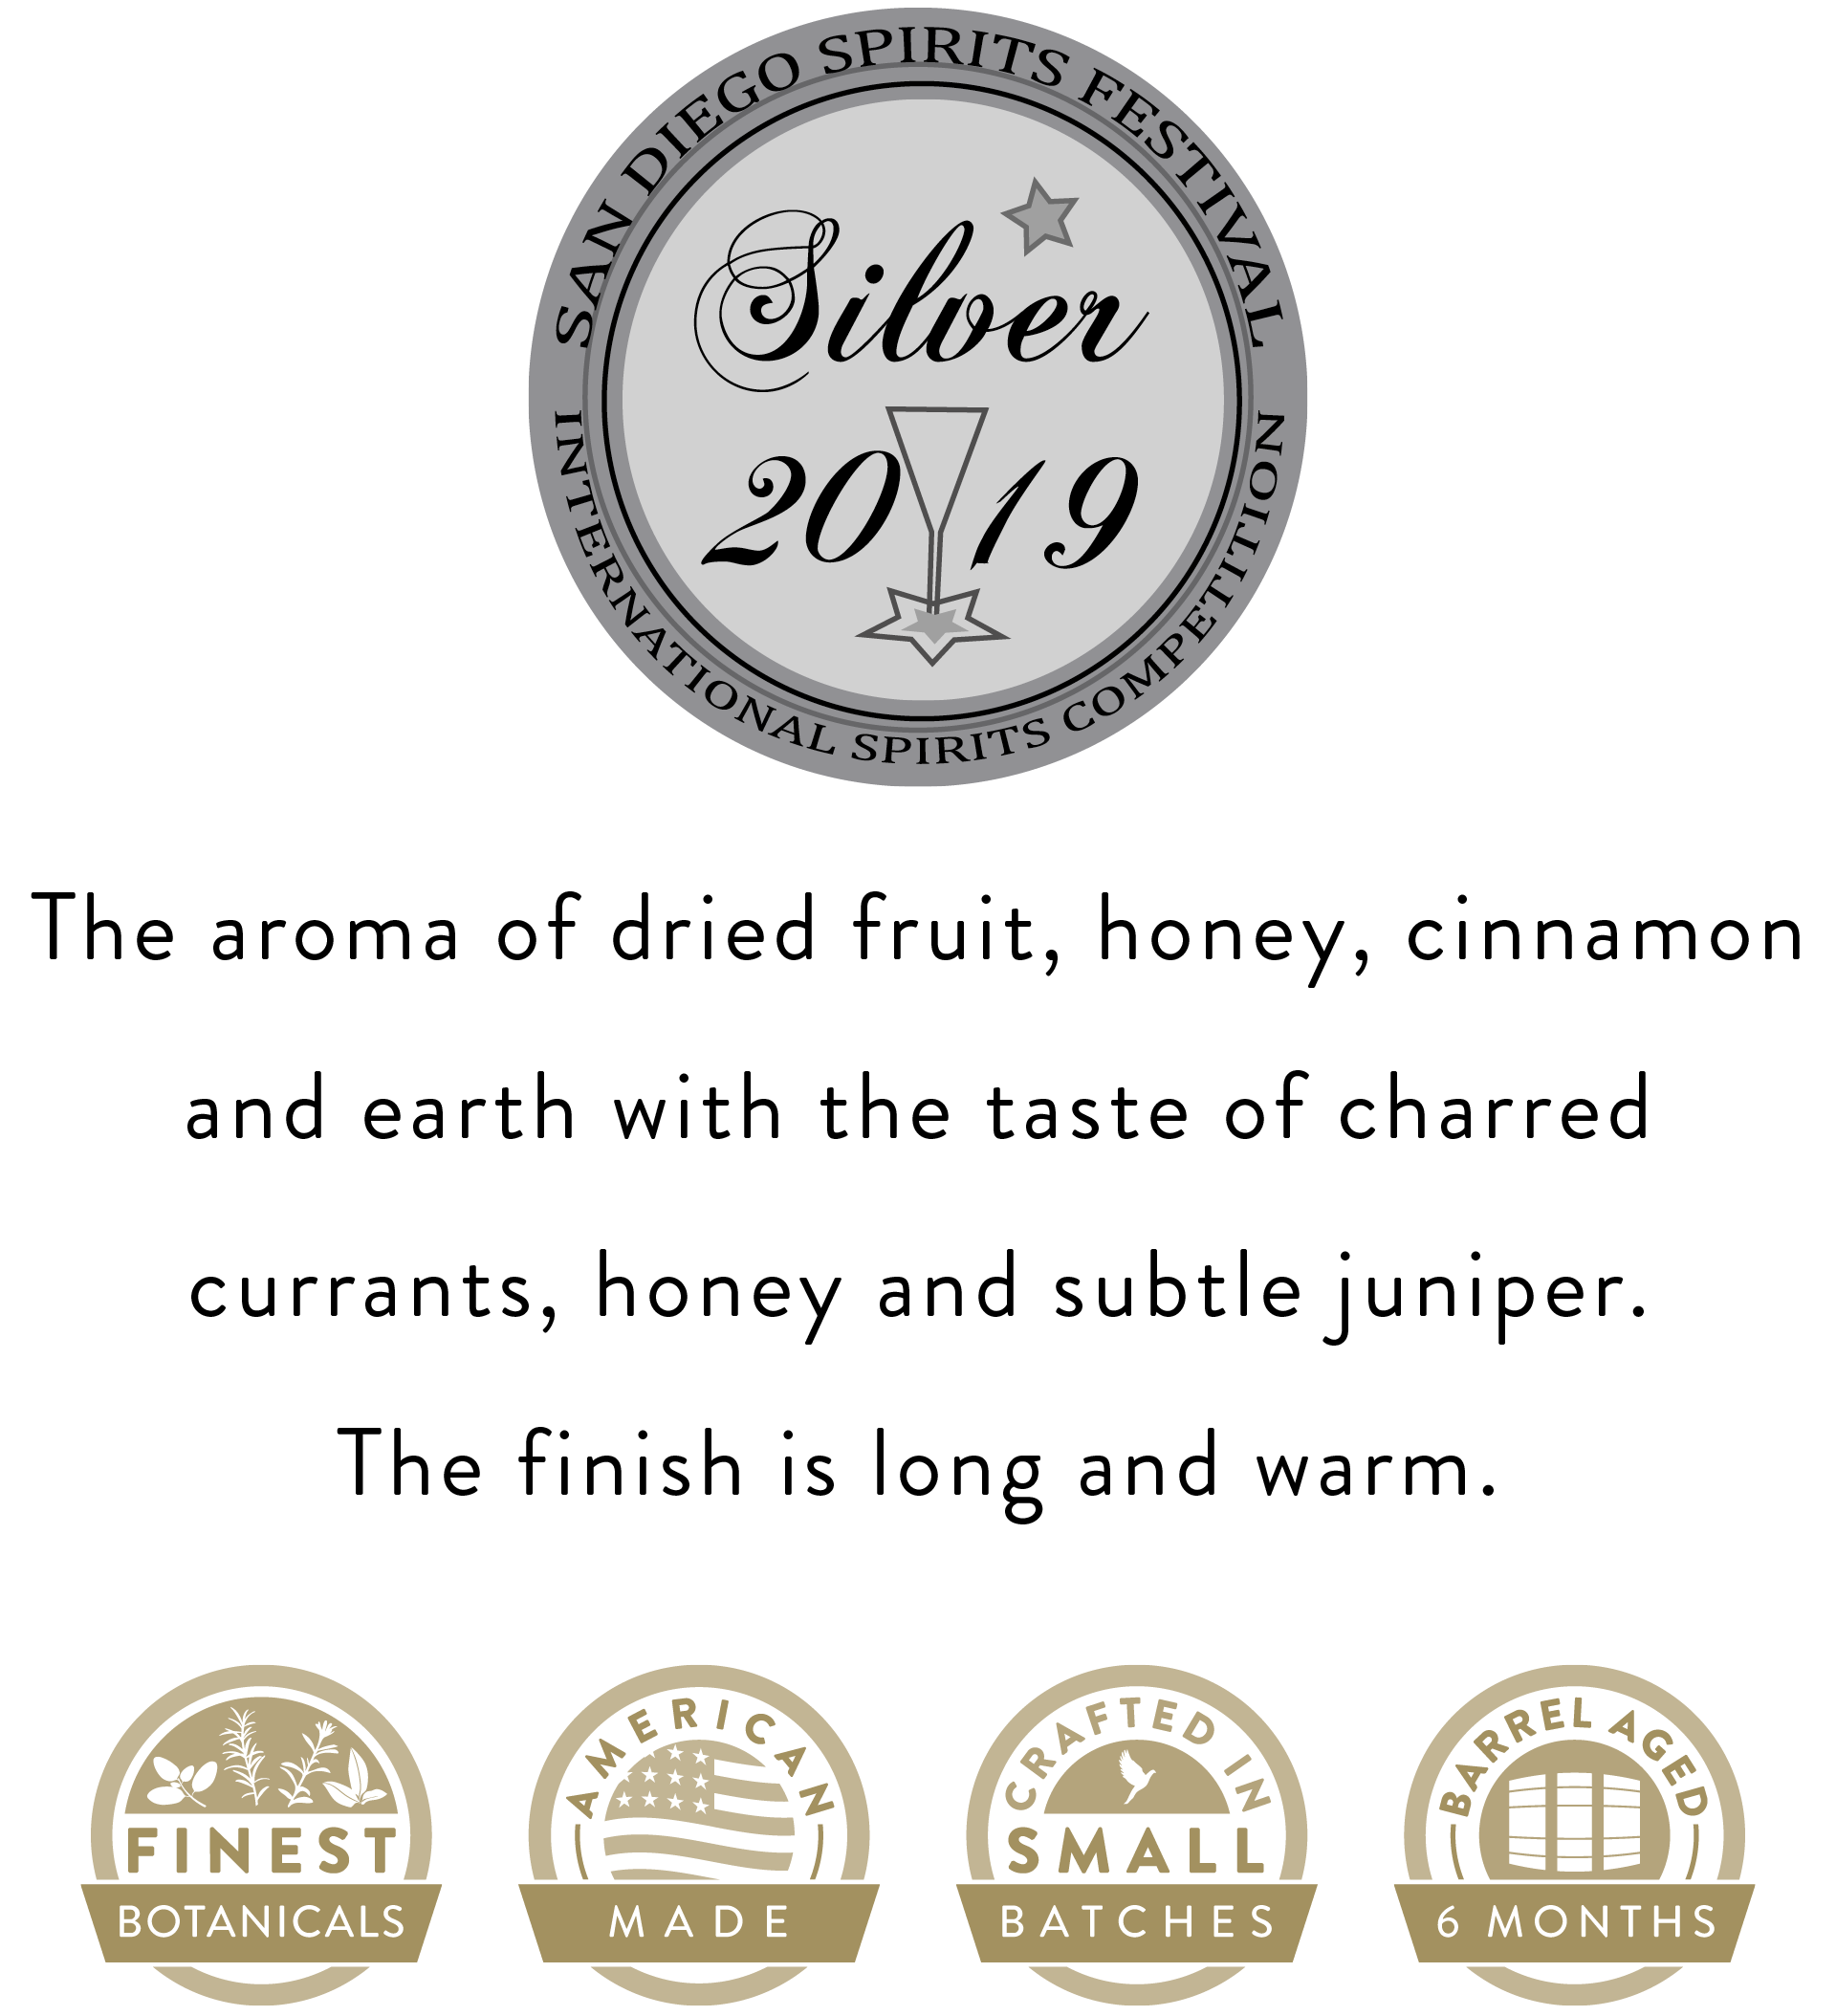 American made, Crafted in small batches and 2019 Silver Award from the San Diego Spirits Festival International Spirts Competition